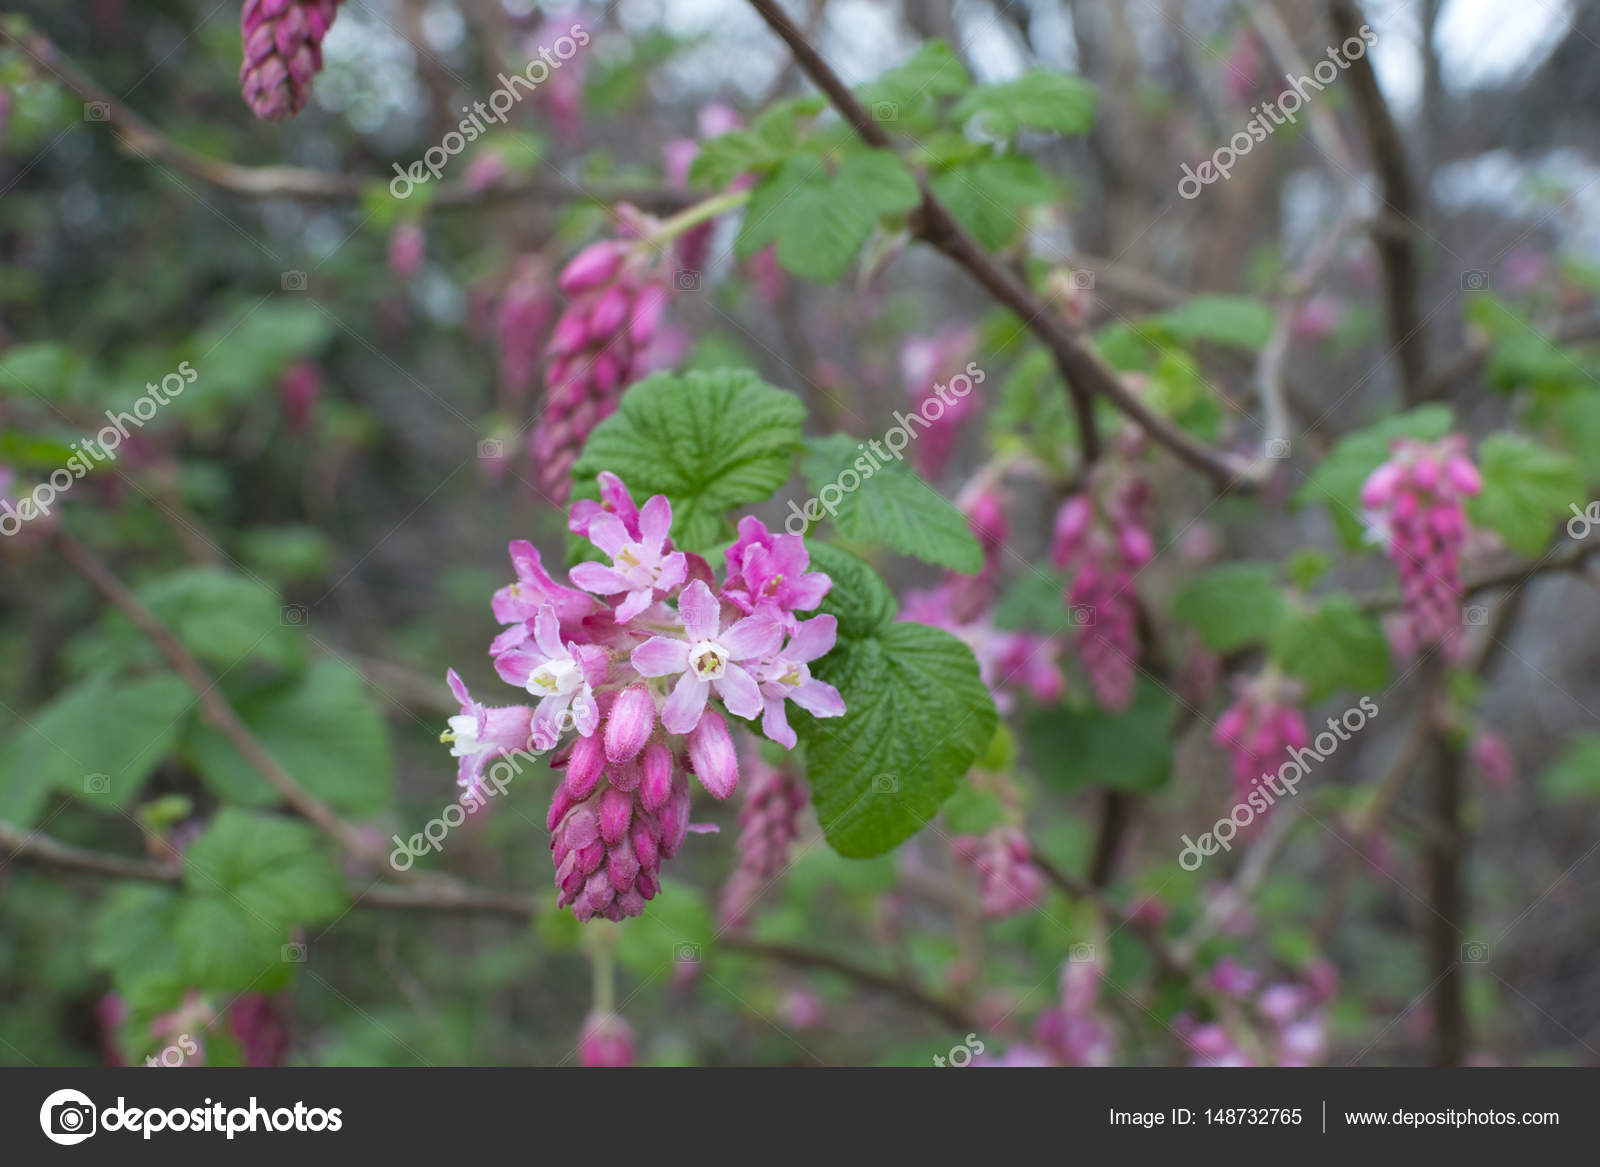 Red flowering currant bush stock photo czuber 148732765 red flowering currant bush stock photo mightylinksfo